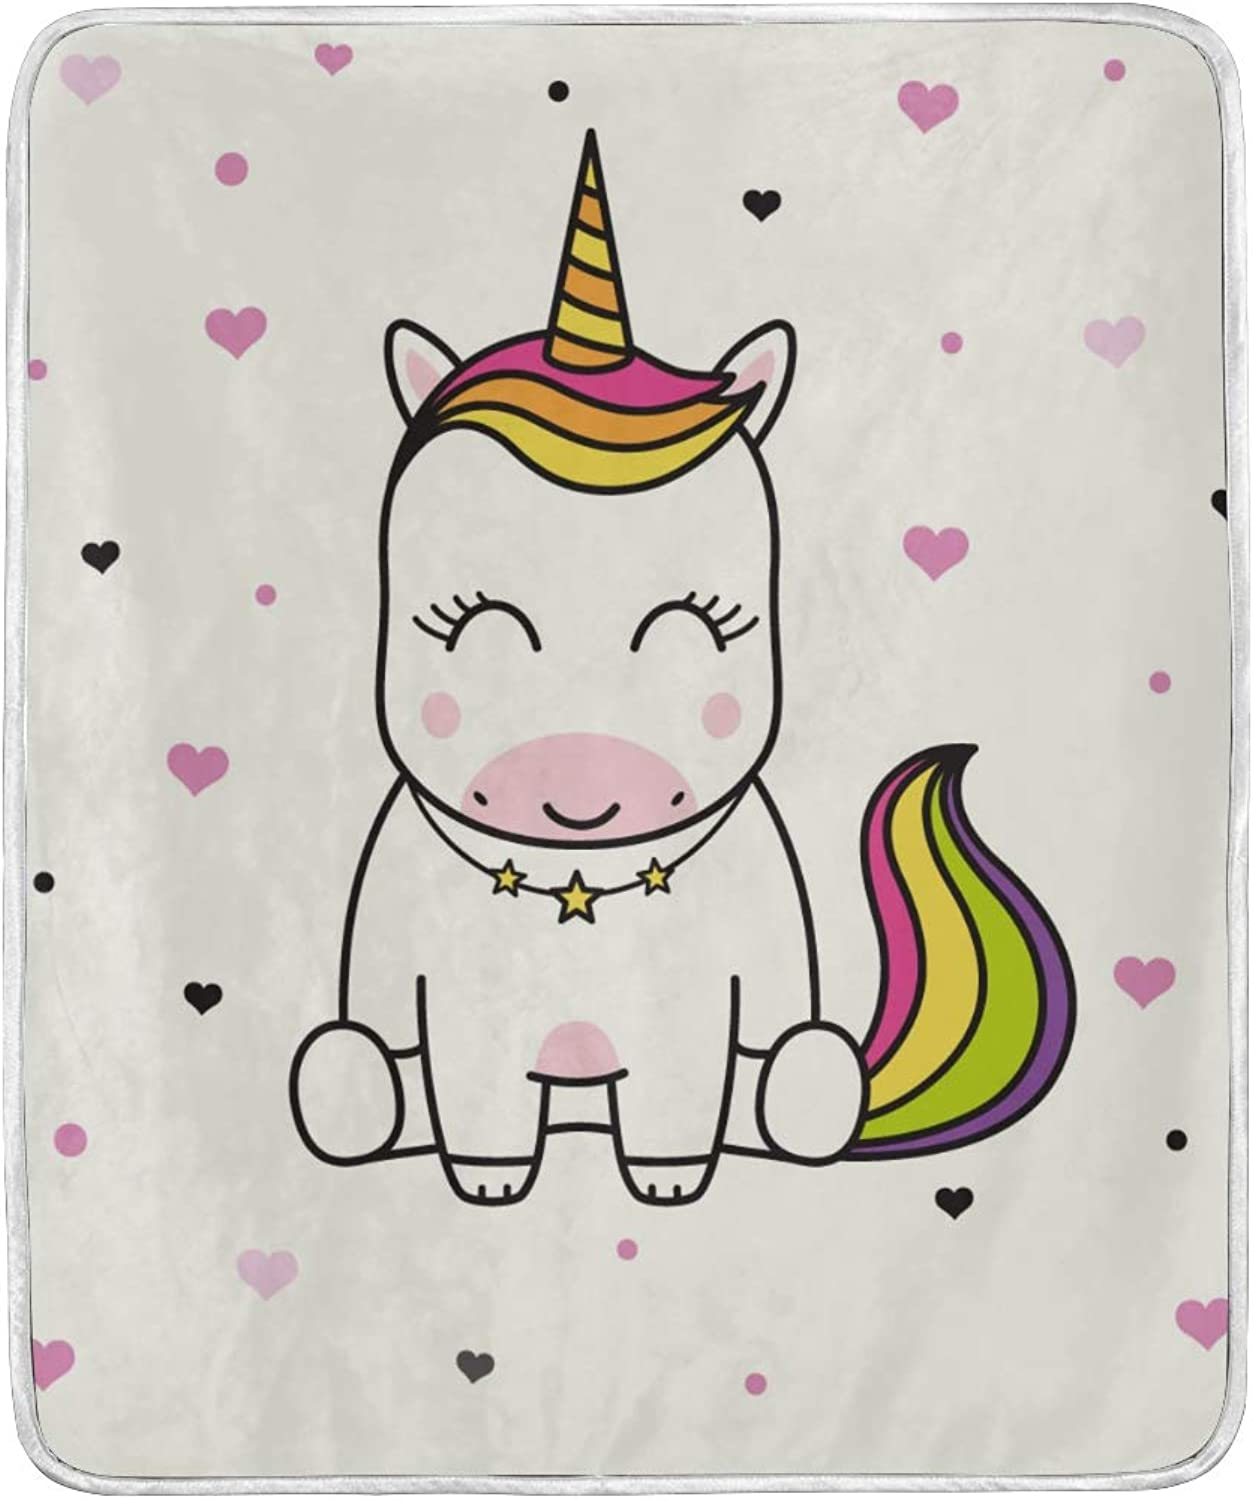 ColourLife Soft Microfiber Bed Blanket Cute Smiling Unicorn Throw Cozy Warm Flannel Fleece Blanket for Kids Women Bed Sofa Couch Beach 50x60 inches